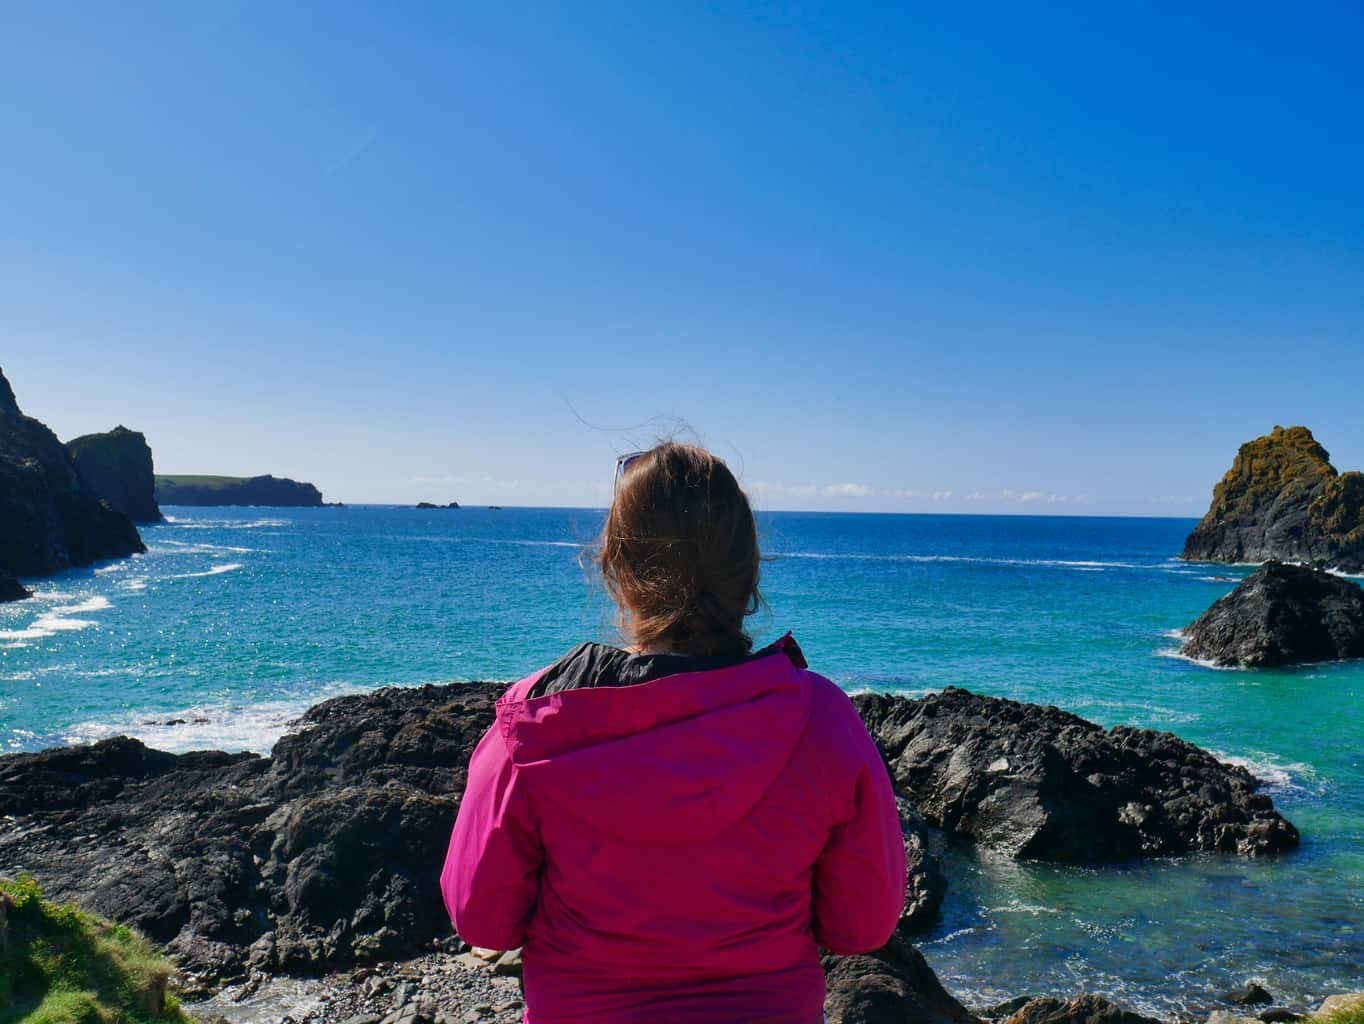 Kalyn looking out over the crystal clear blue water of Kynance Cove with deep blue sky